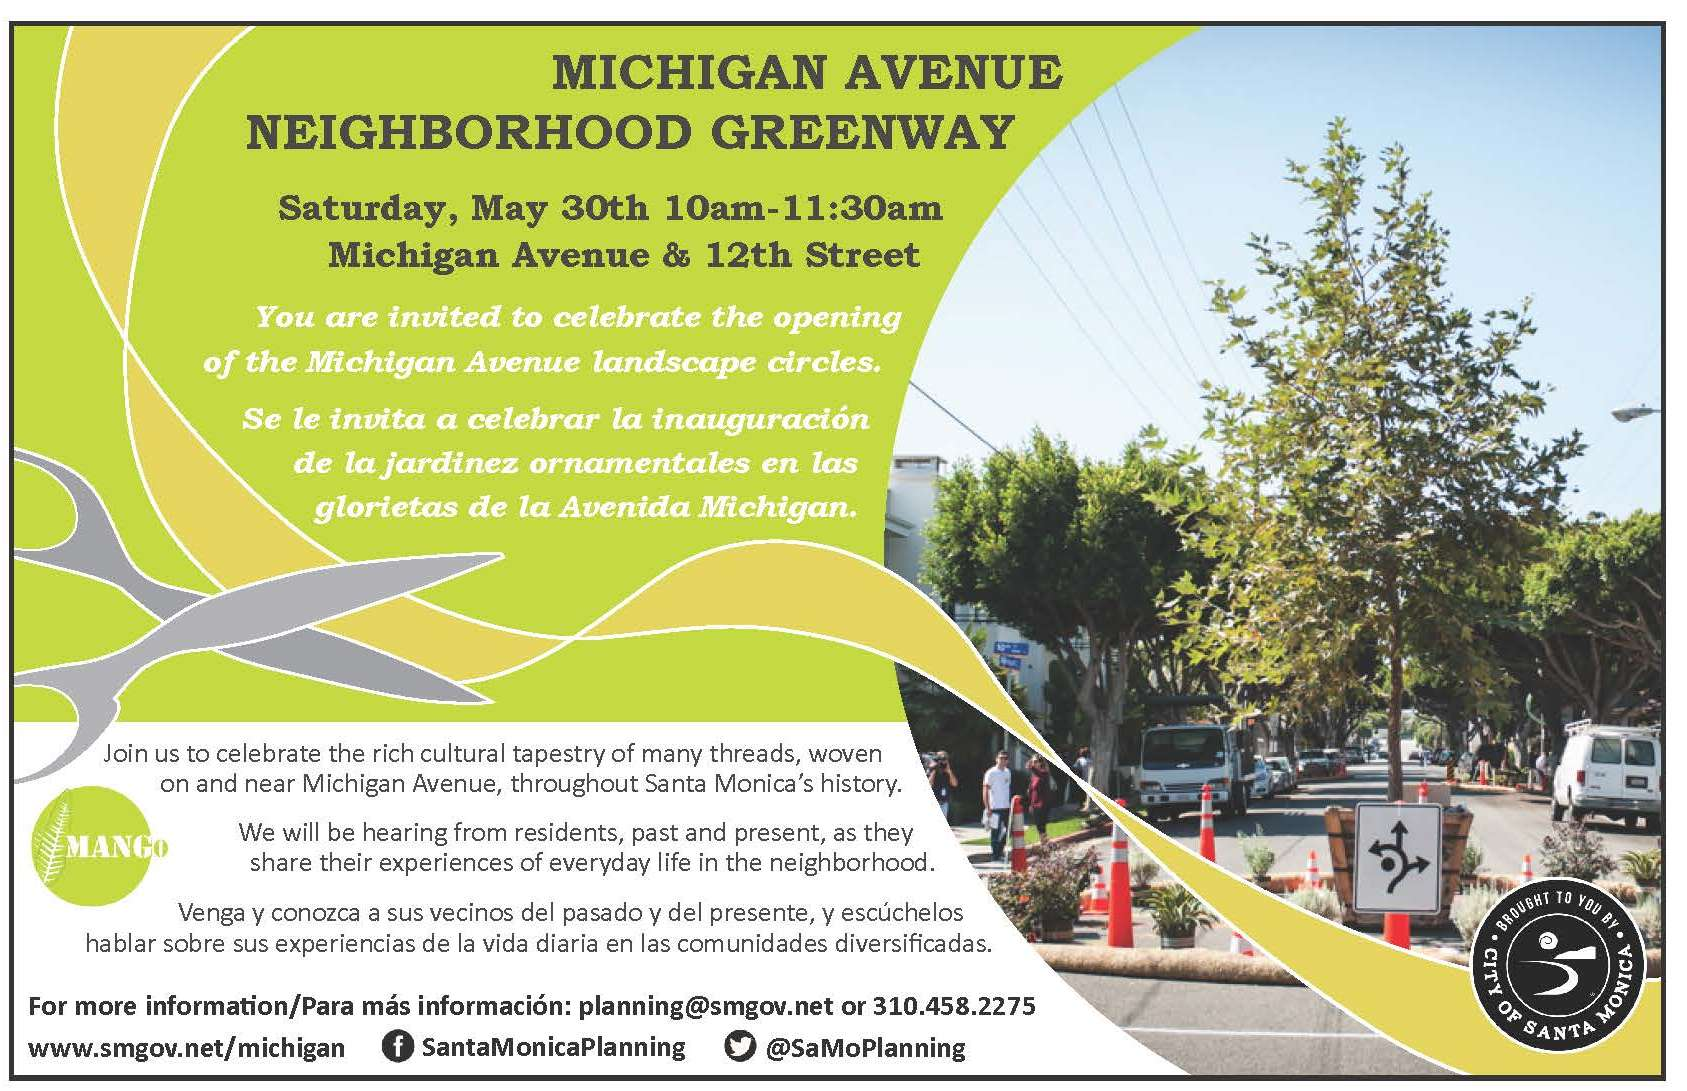 MANGo Ribbon Cutting Flyer